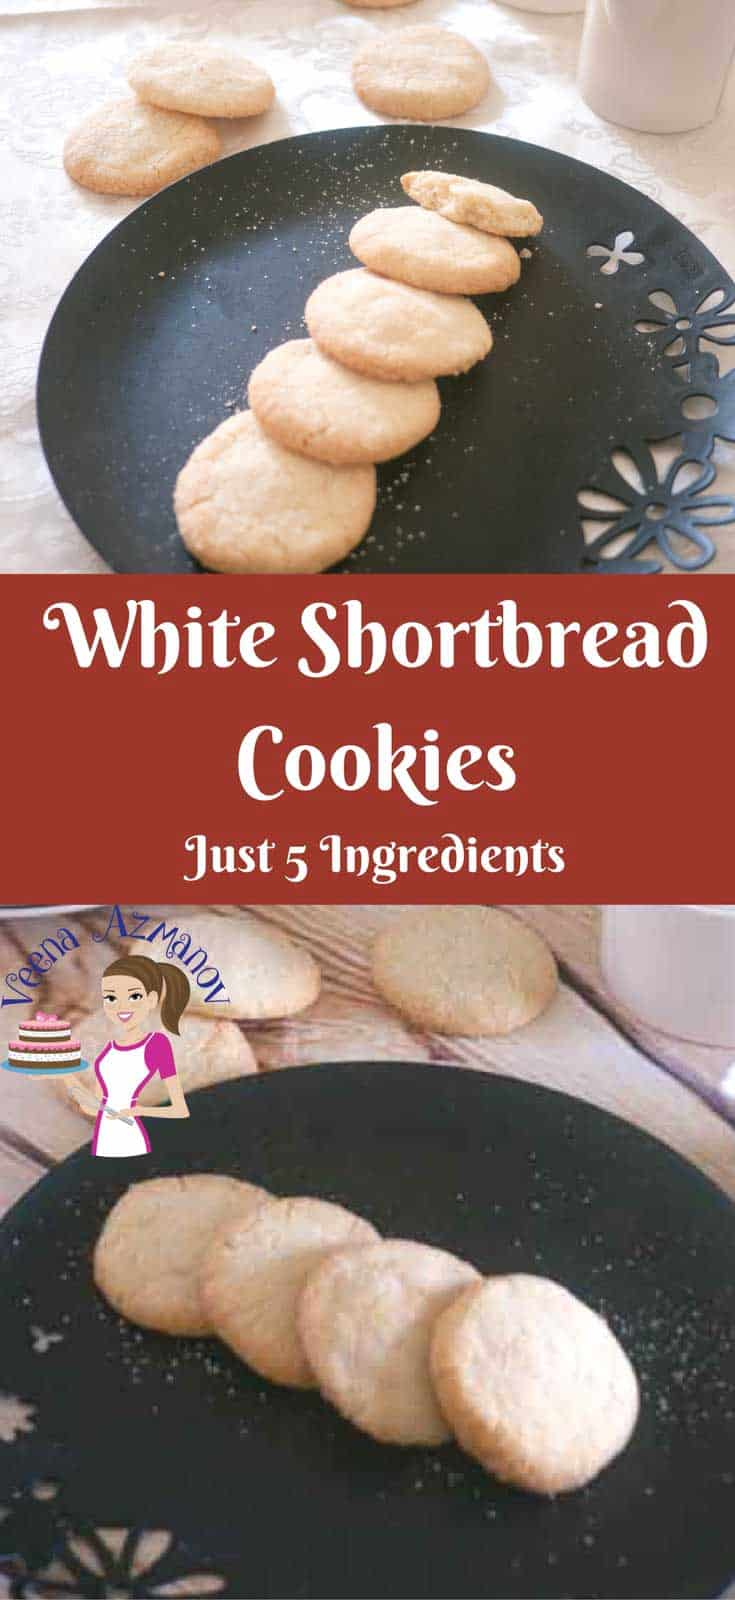 These white shortbread cookies are eggless and super easy to make. With only 5 ingredients they barely take any time to make or bake. Such a great treat any time